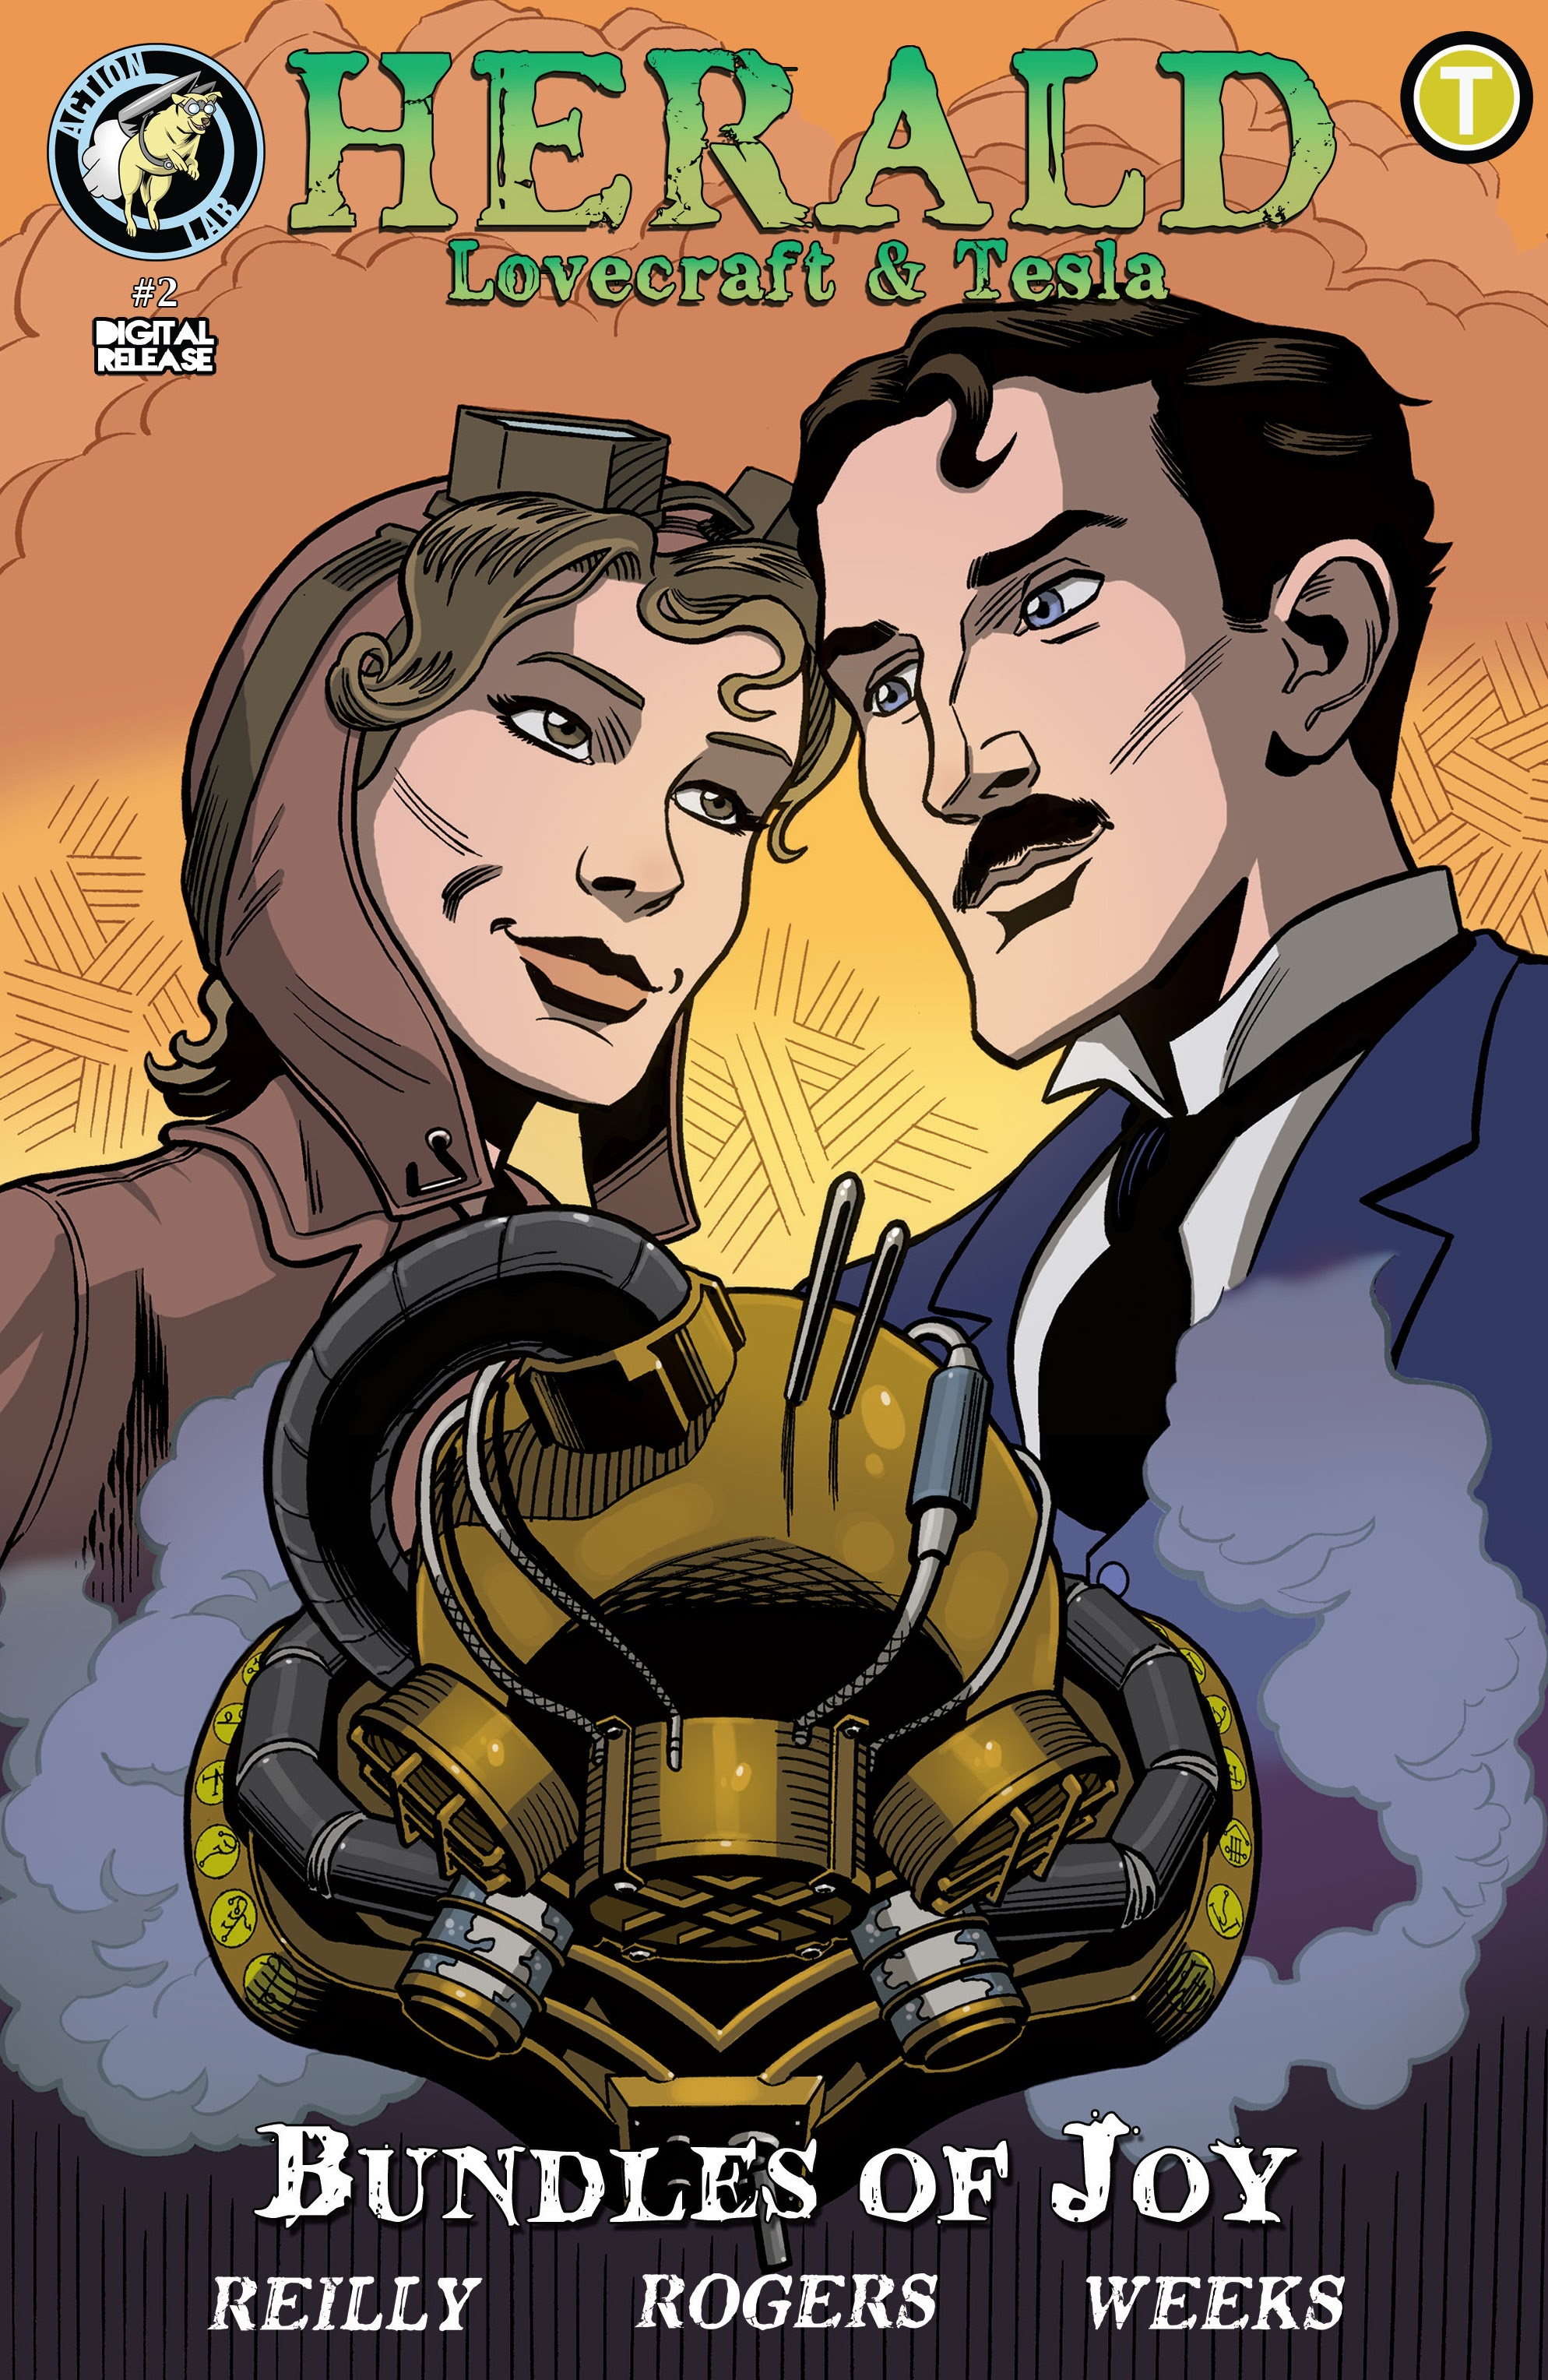 Herald: Lovecraft & Tesla - Bundles of Joy issue 2 - Page 1